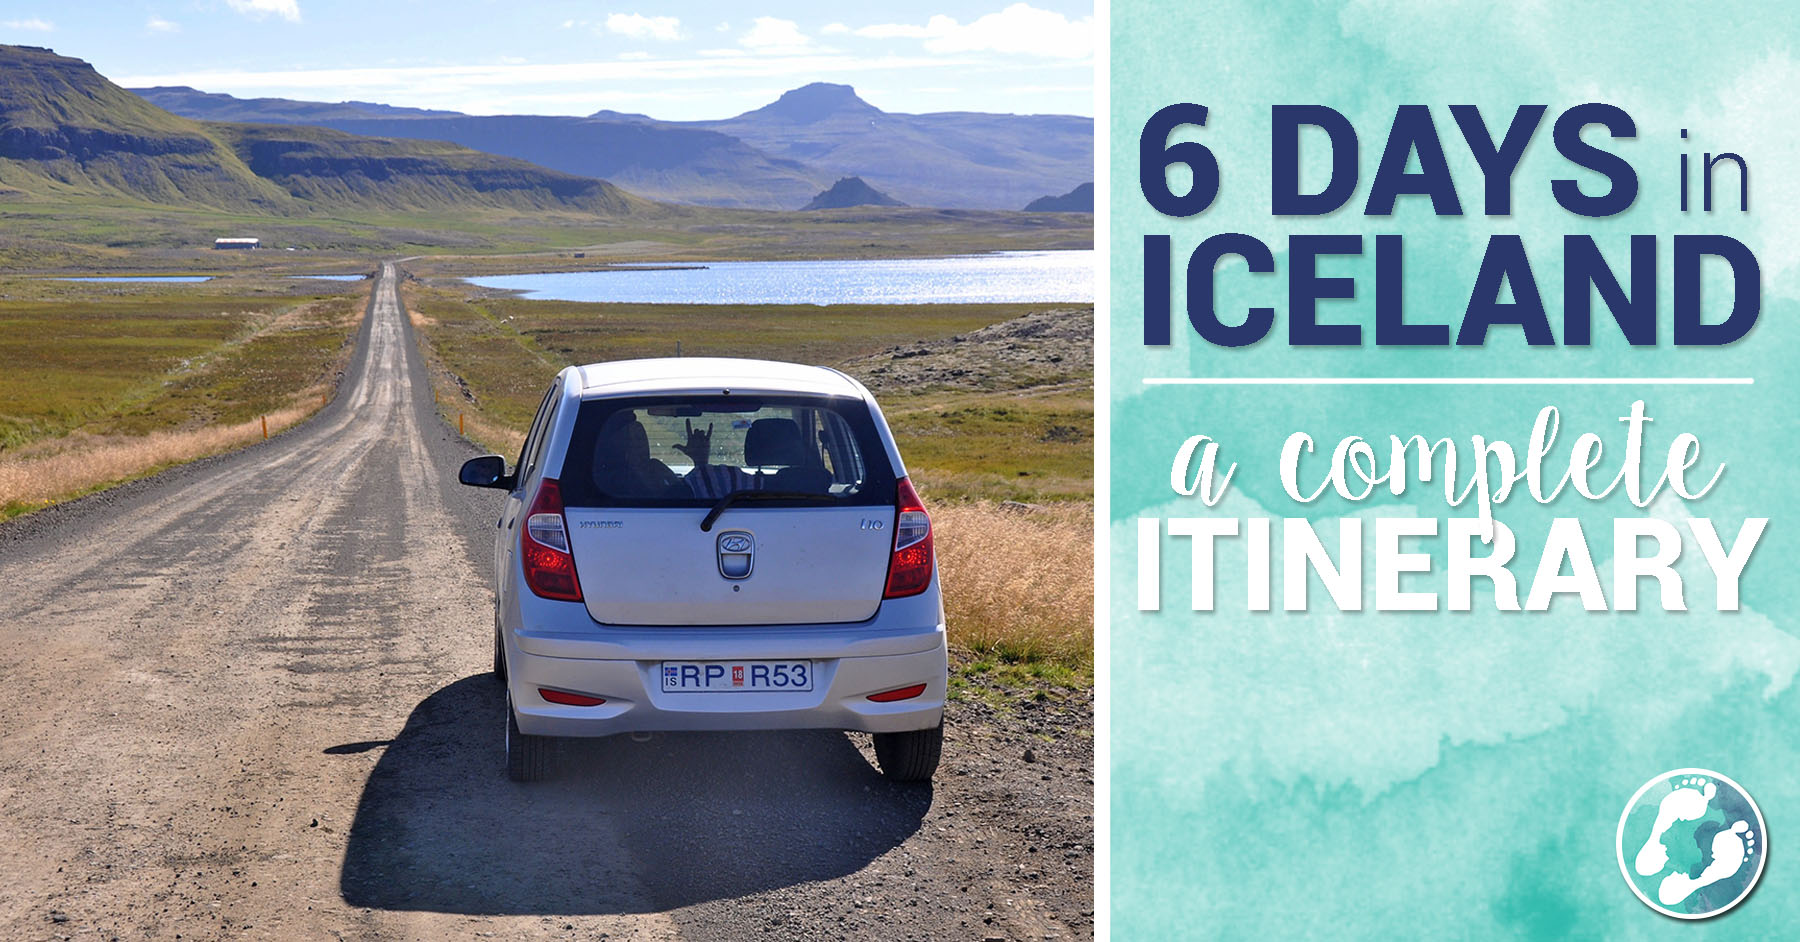 6 Days in Iceland: A Complete Itinerary